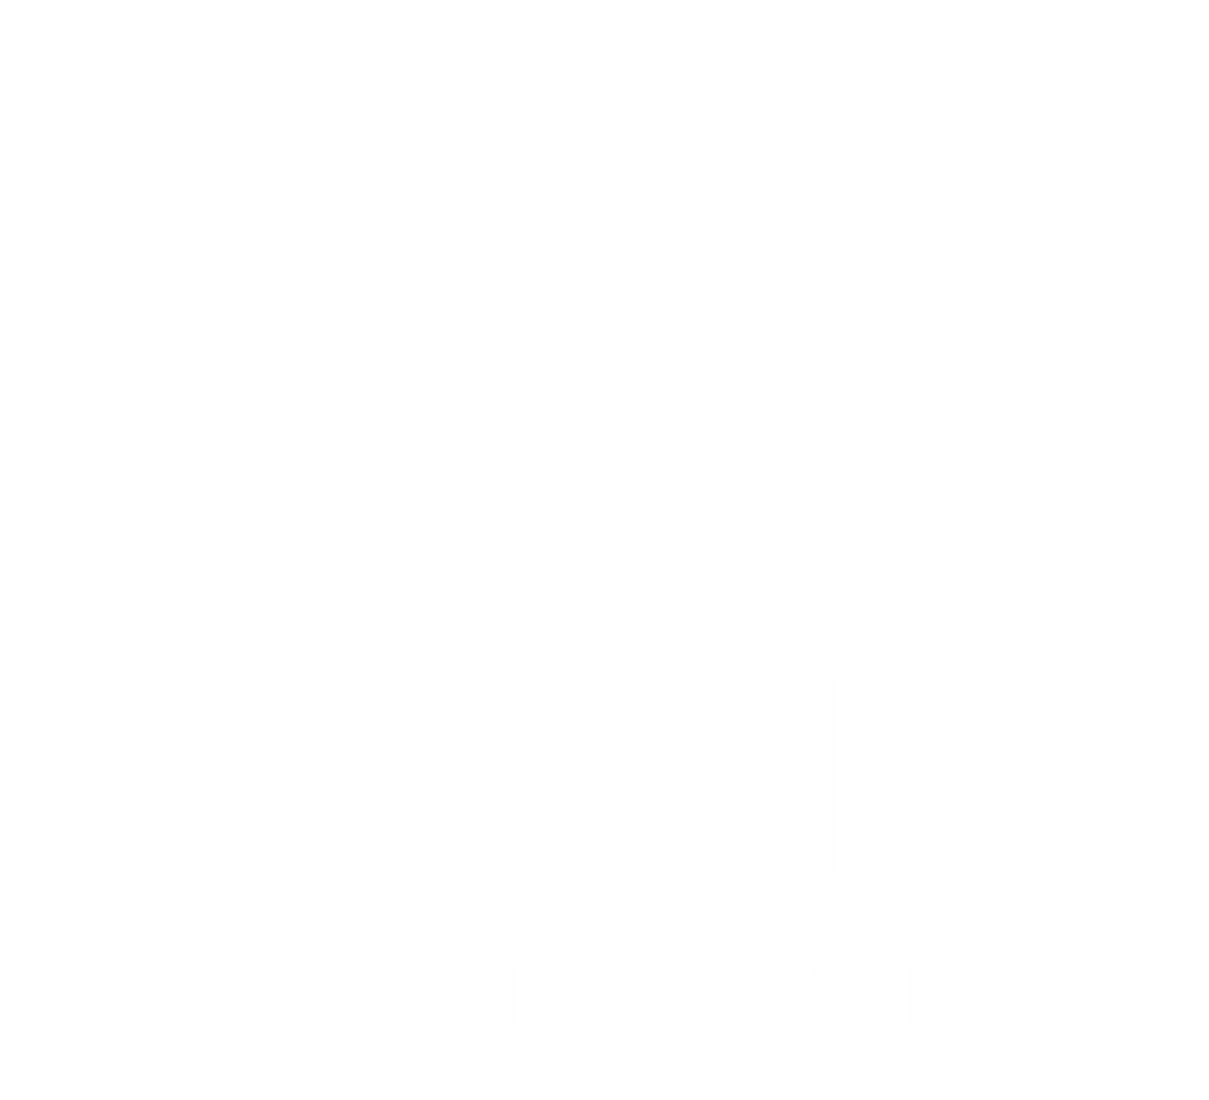 Peak Financial Services